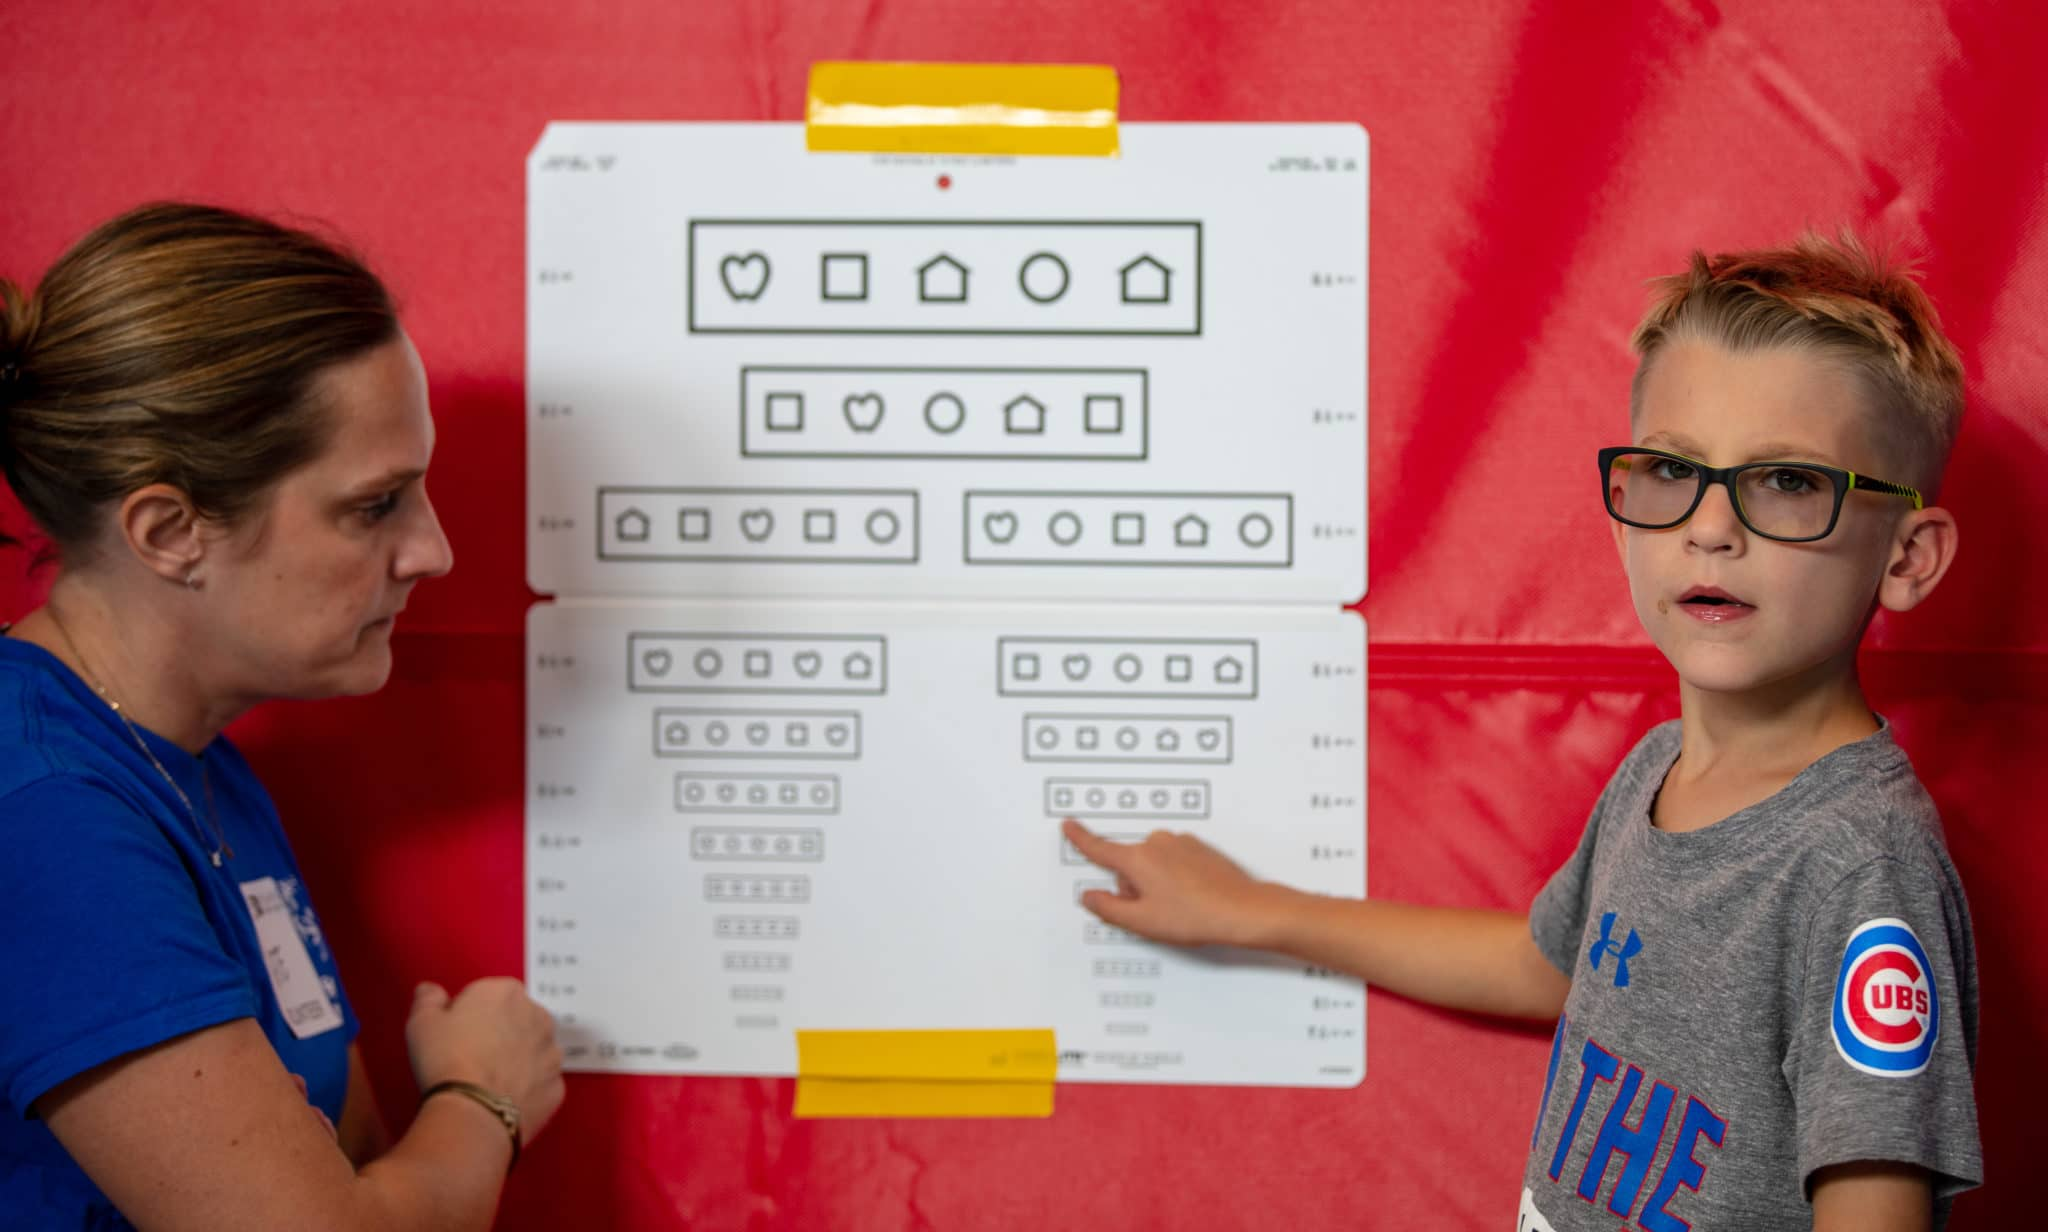 An athlete looks at the camera and points at an eye chart to let the volunteer know how far down the chart they can read